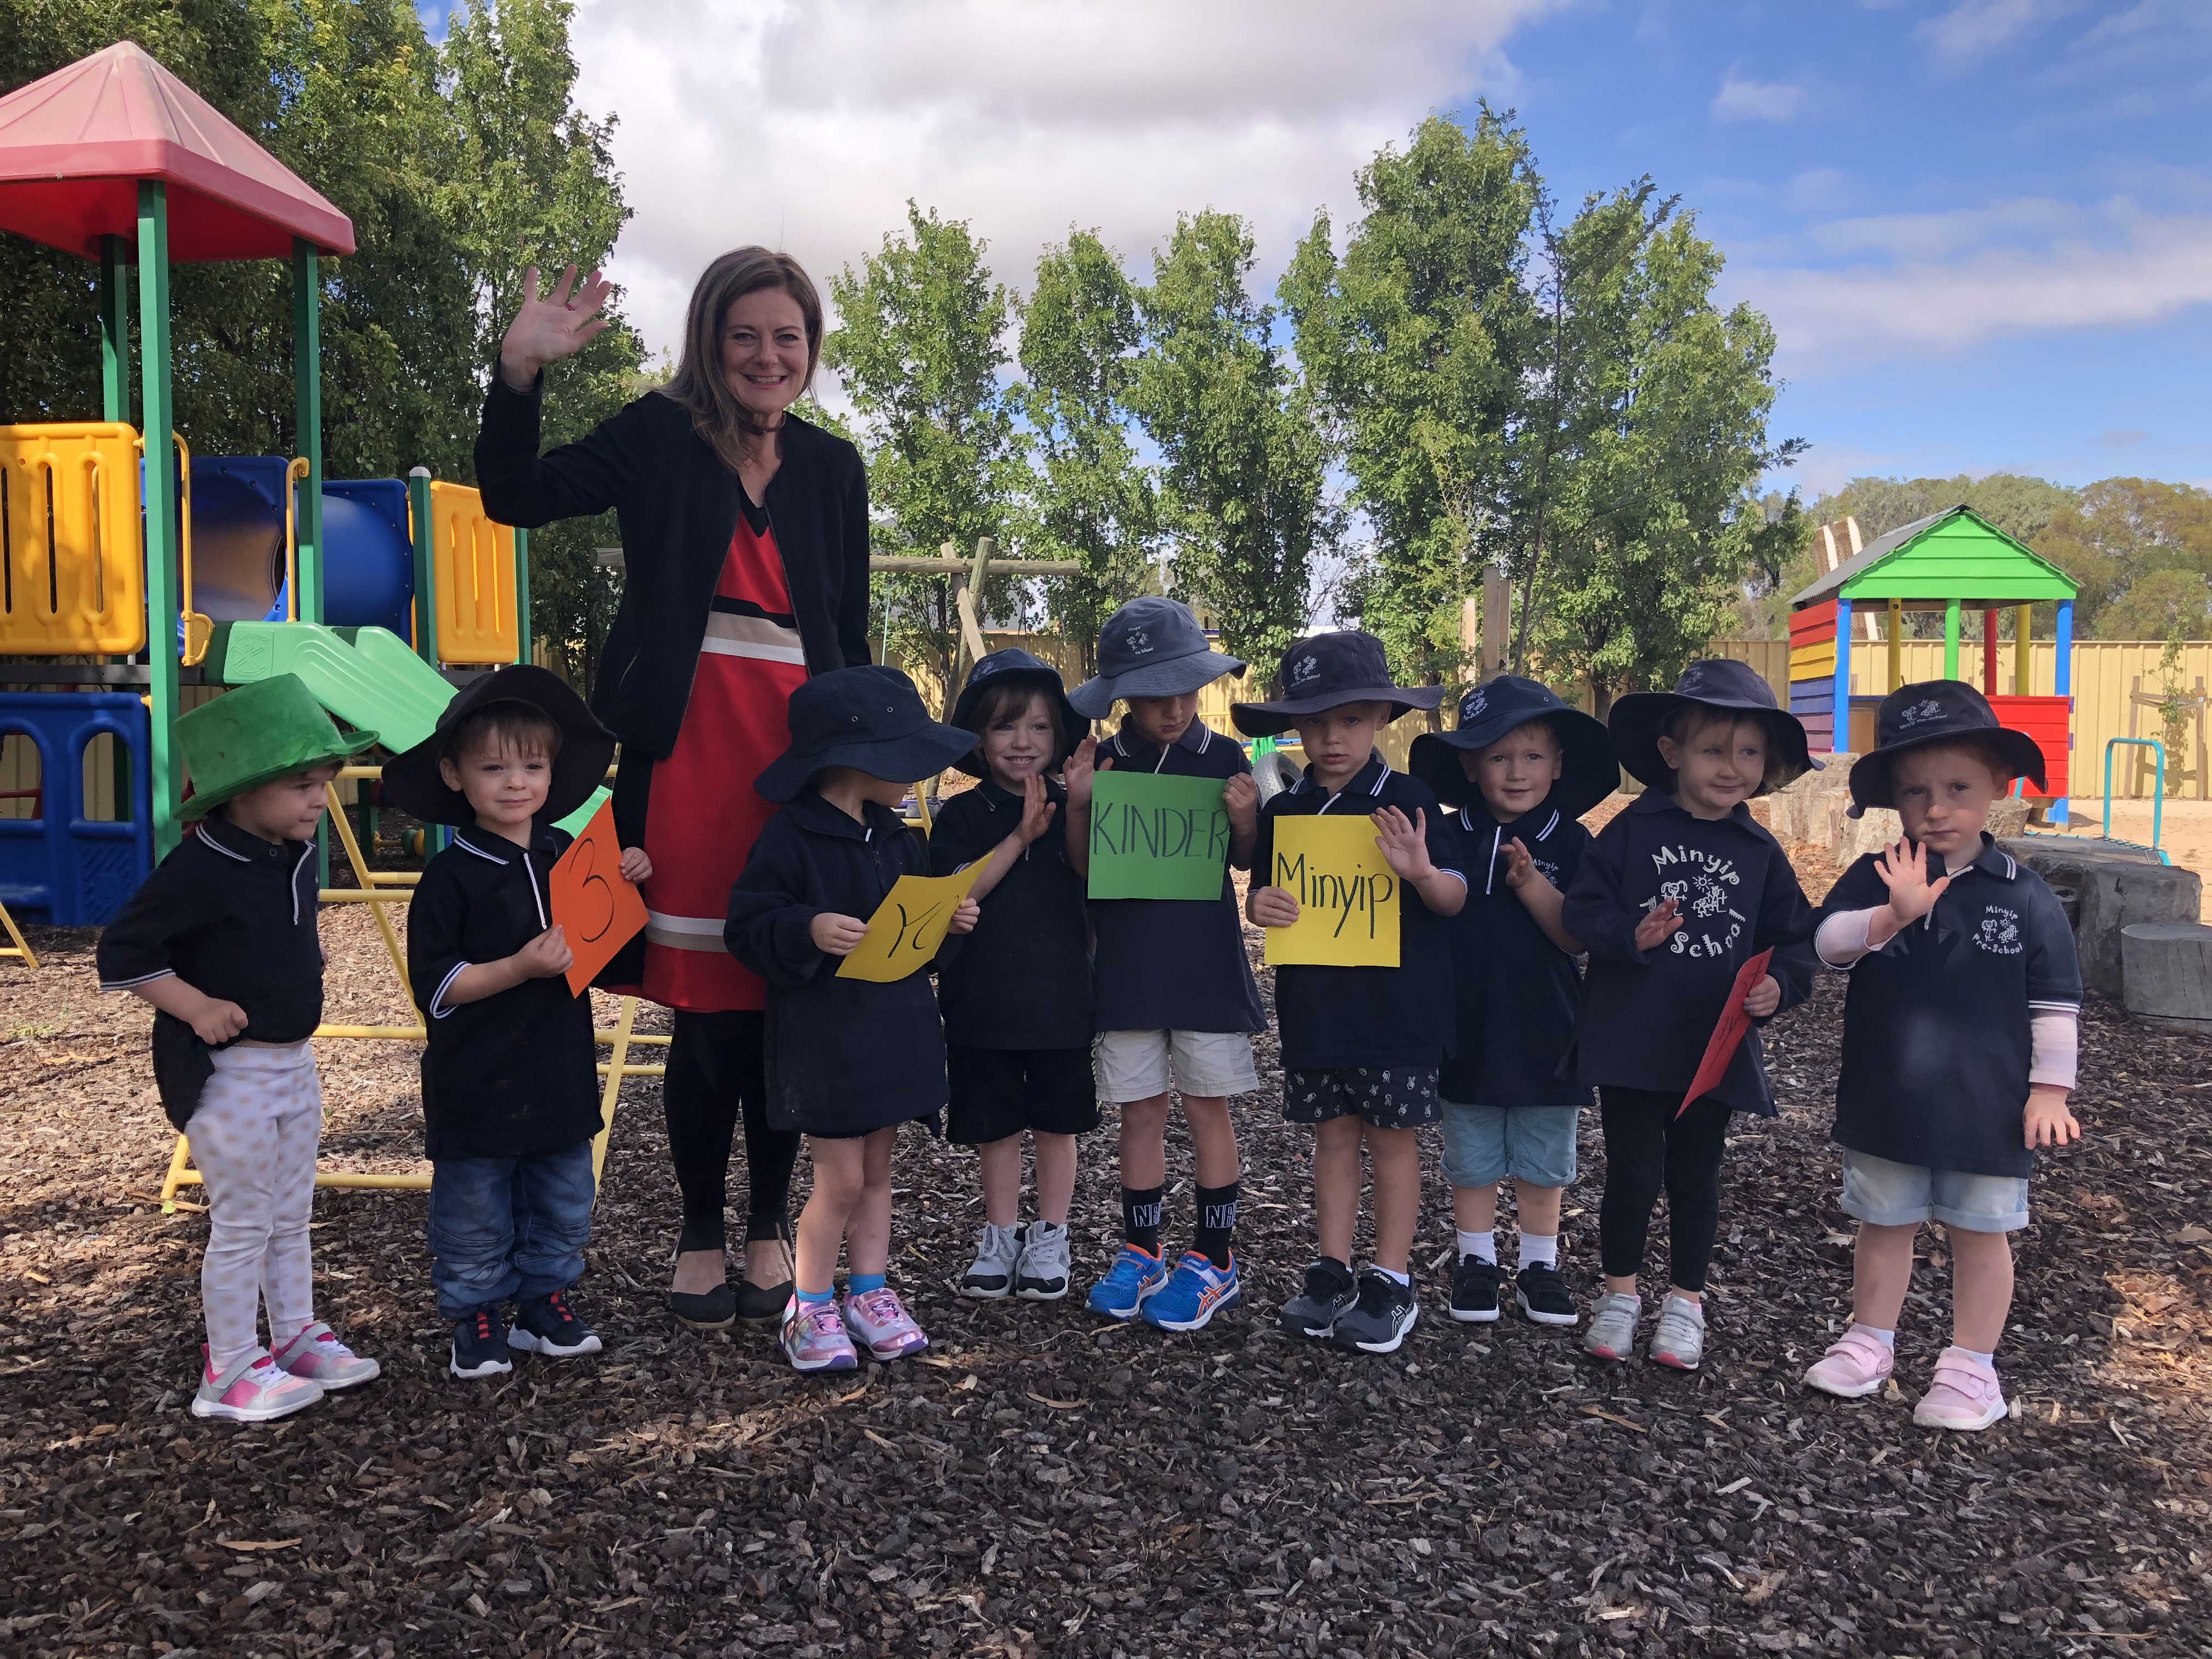 MP Sonya Kilkenny stand with a group of 3 year olds in a playgroundinder one of the leaders in the roll out of funded three-year-old kinder